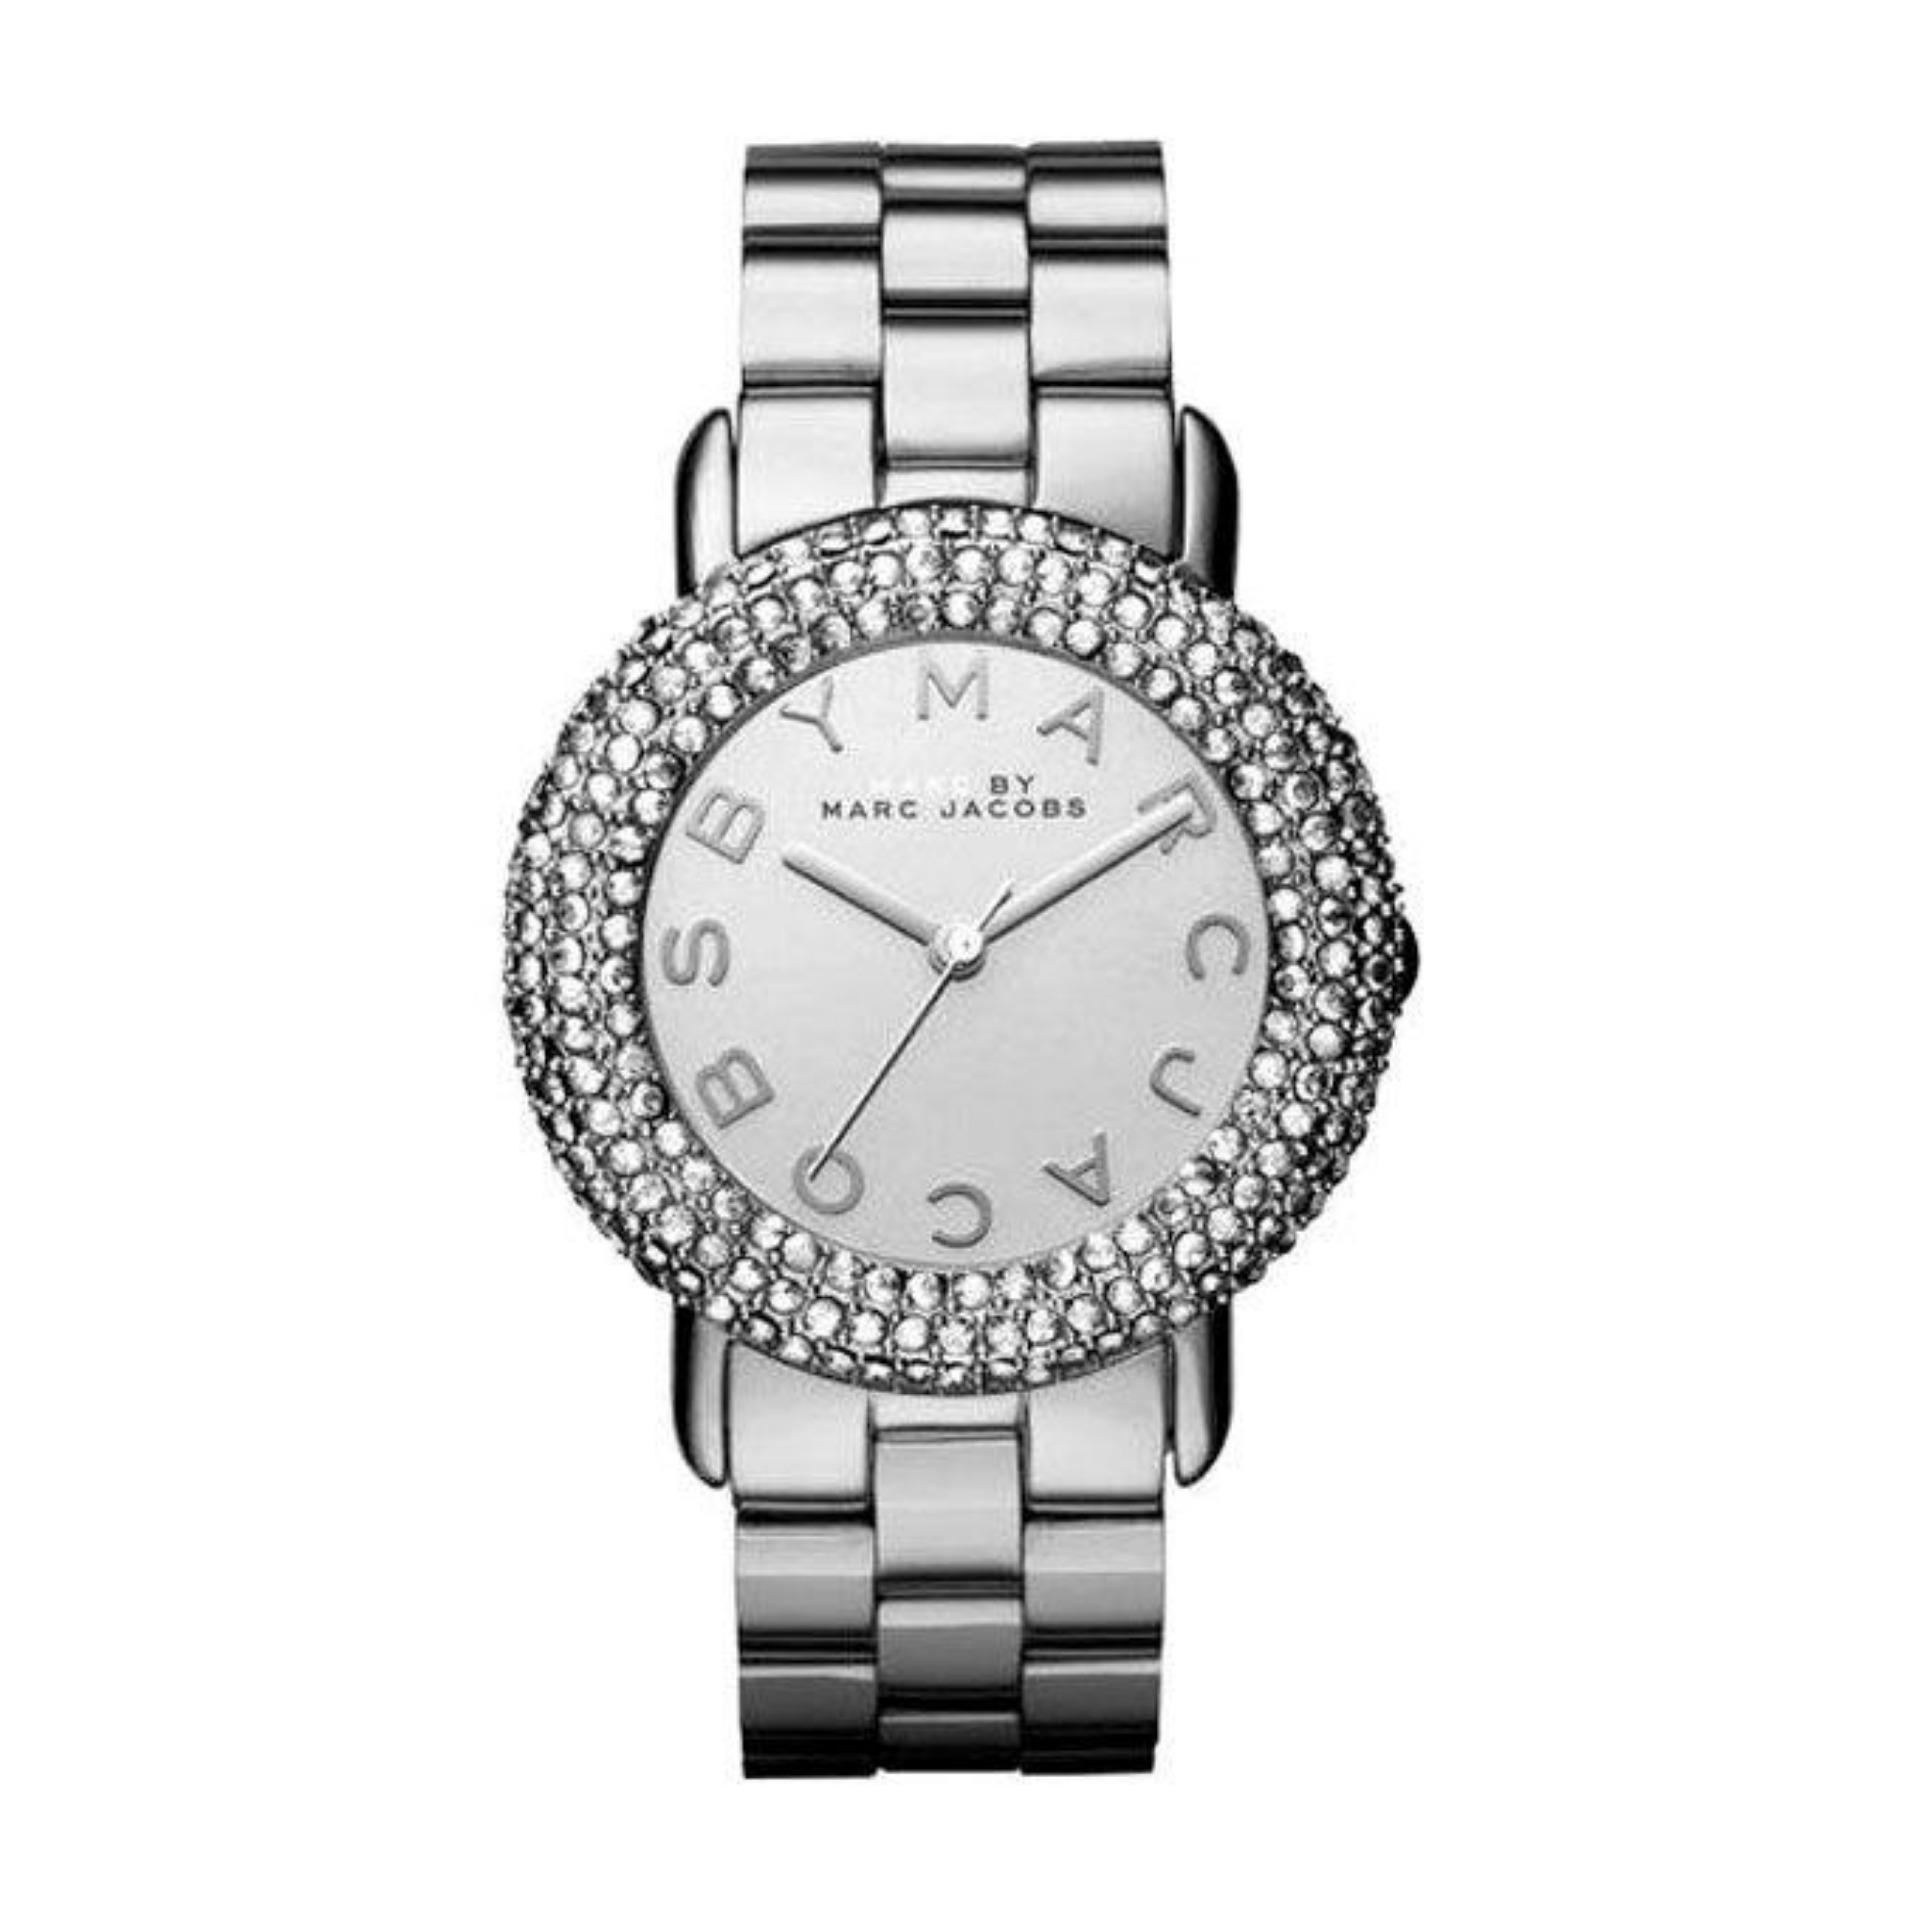 Stainless Steel MBM3190 Analogue Watch For Women - Silver